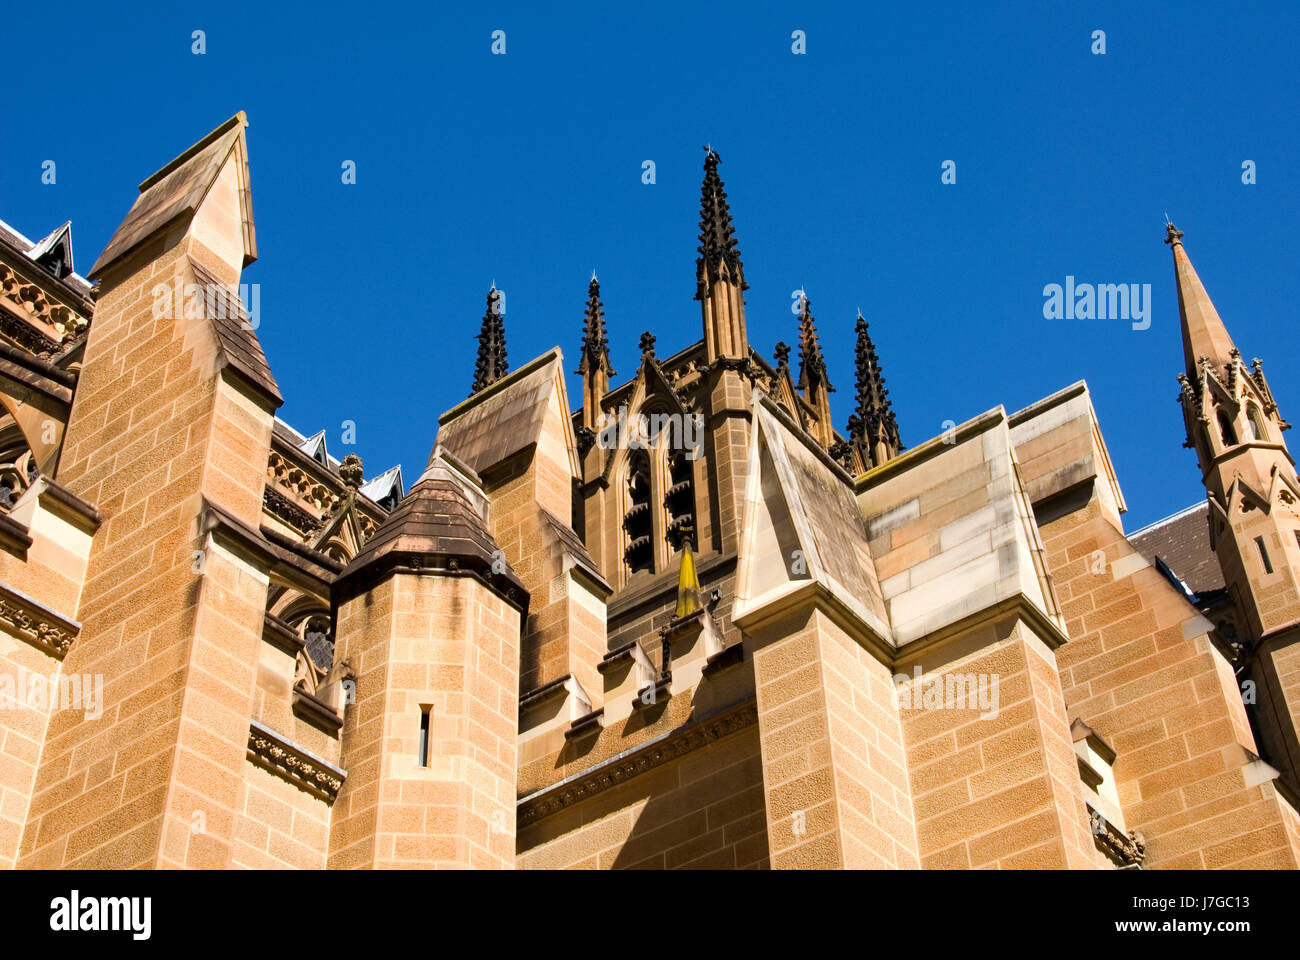 blue religion religious church famous stone cathedral